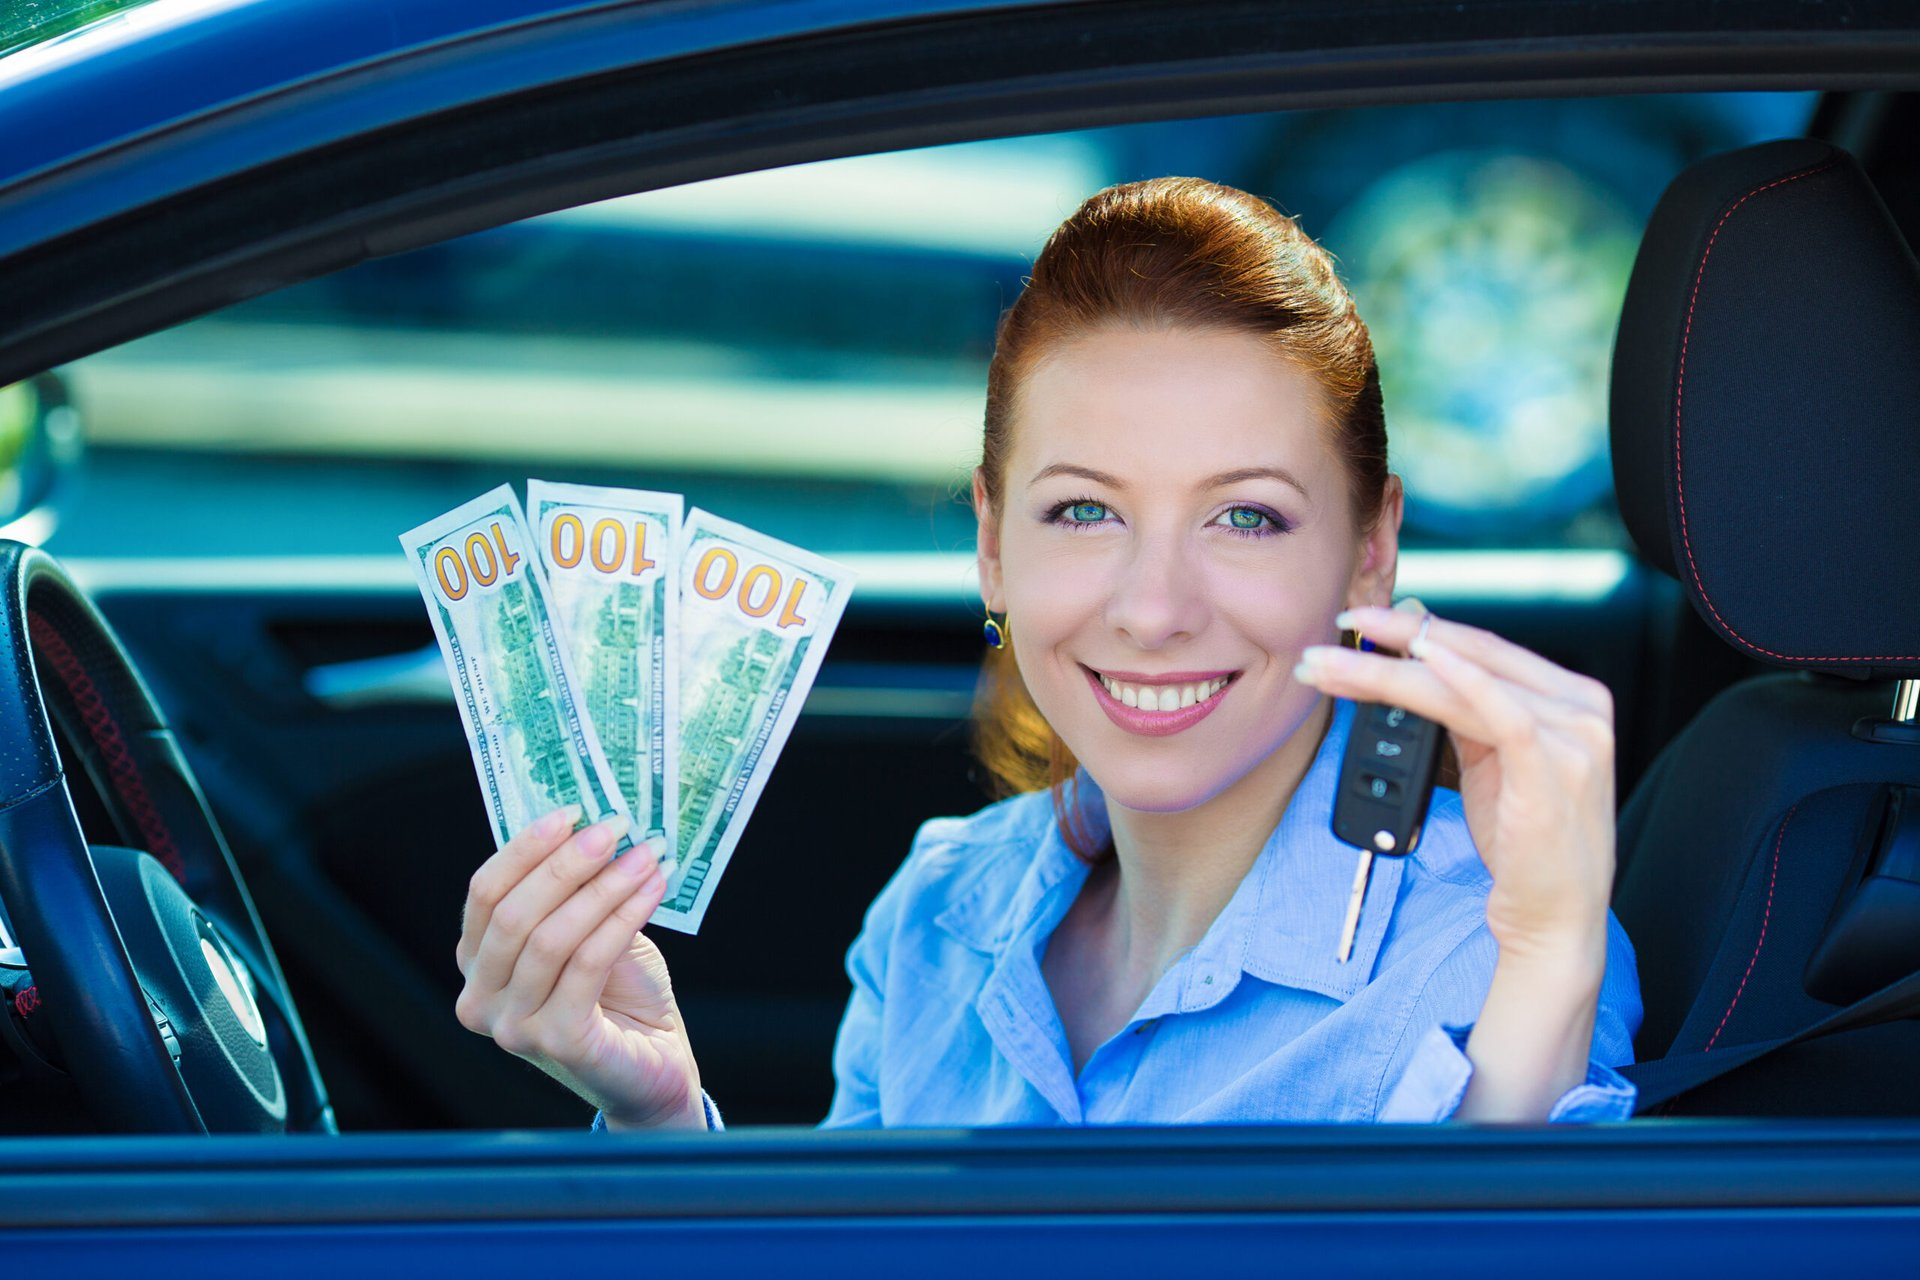 Woman in a car holding up money